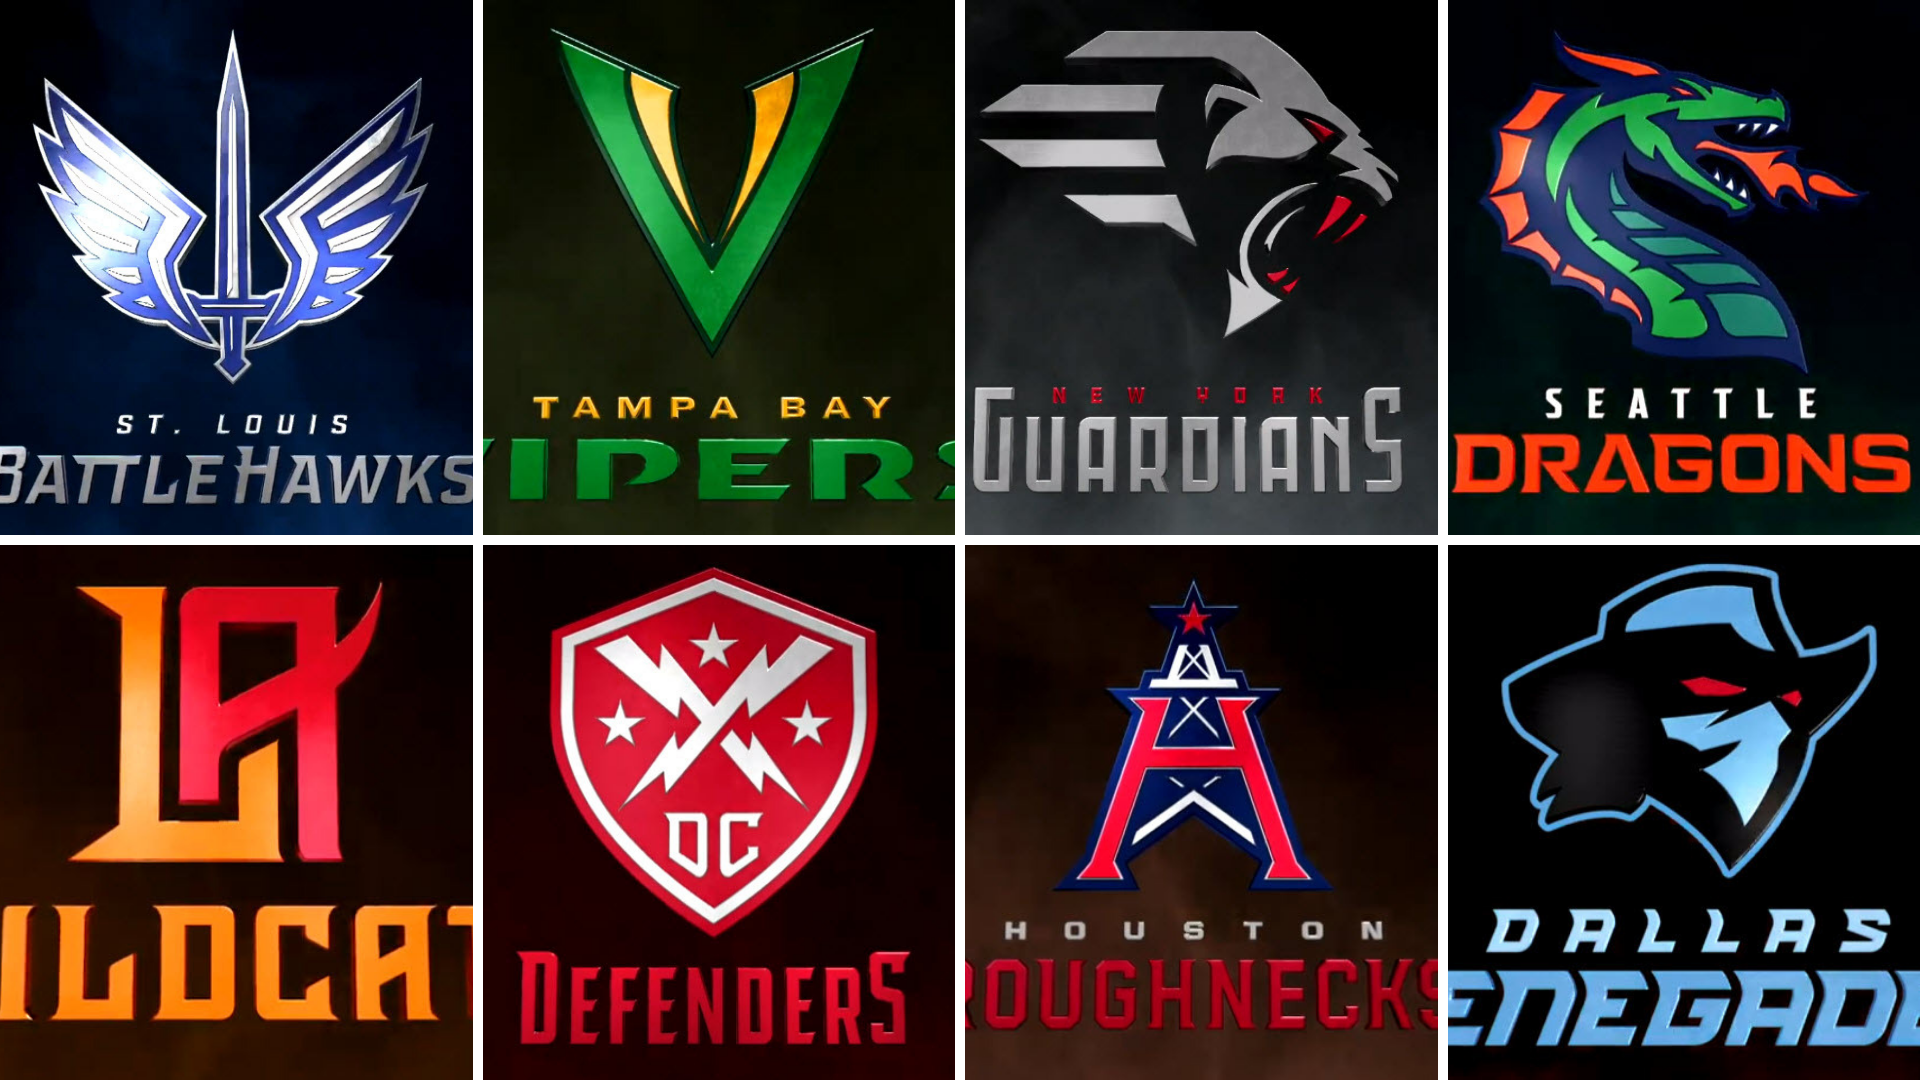 XFL Team Names And Logos Revealed, Recap Of Announcement